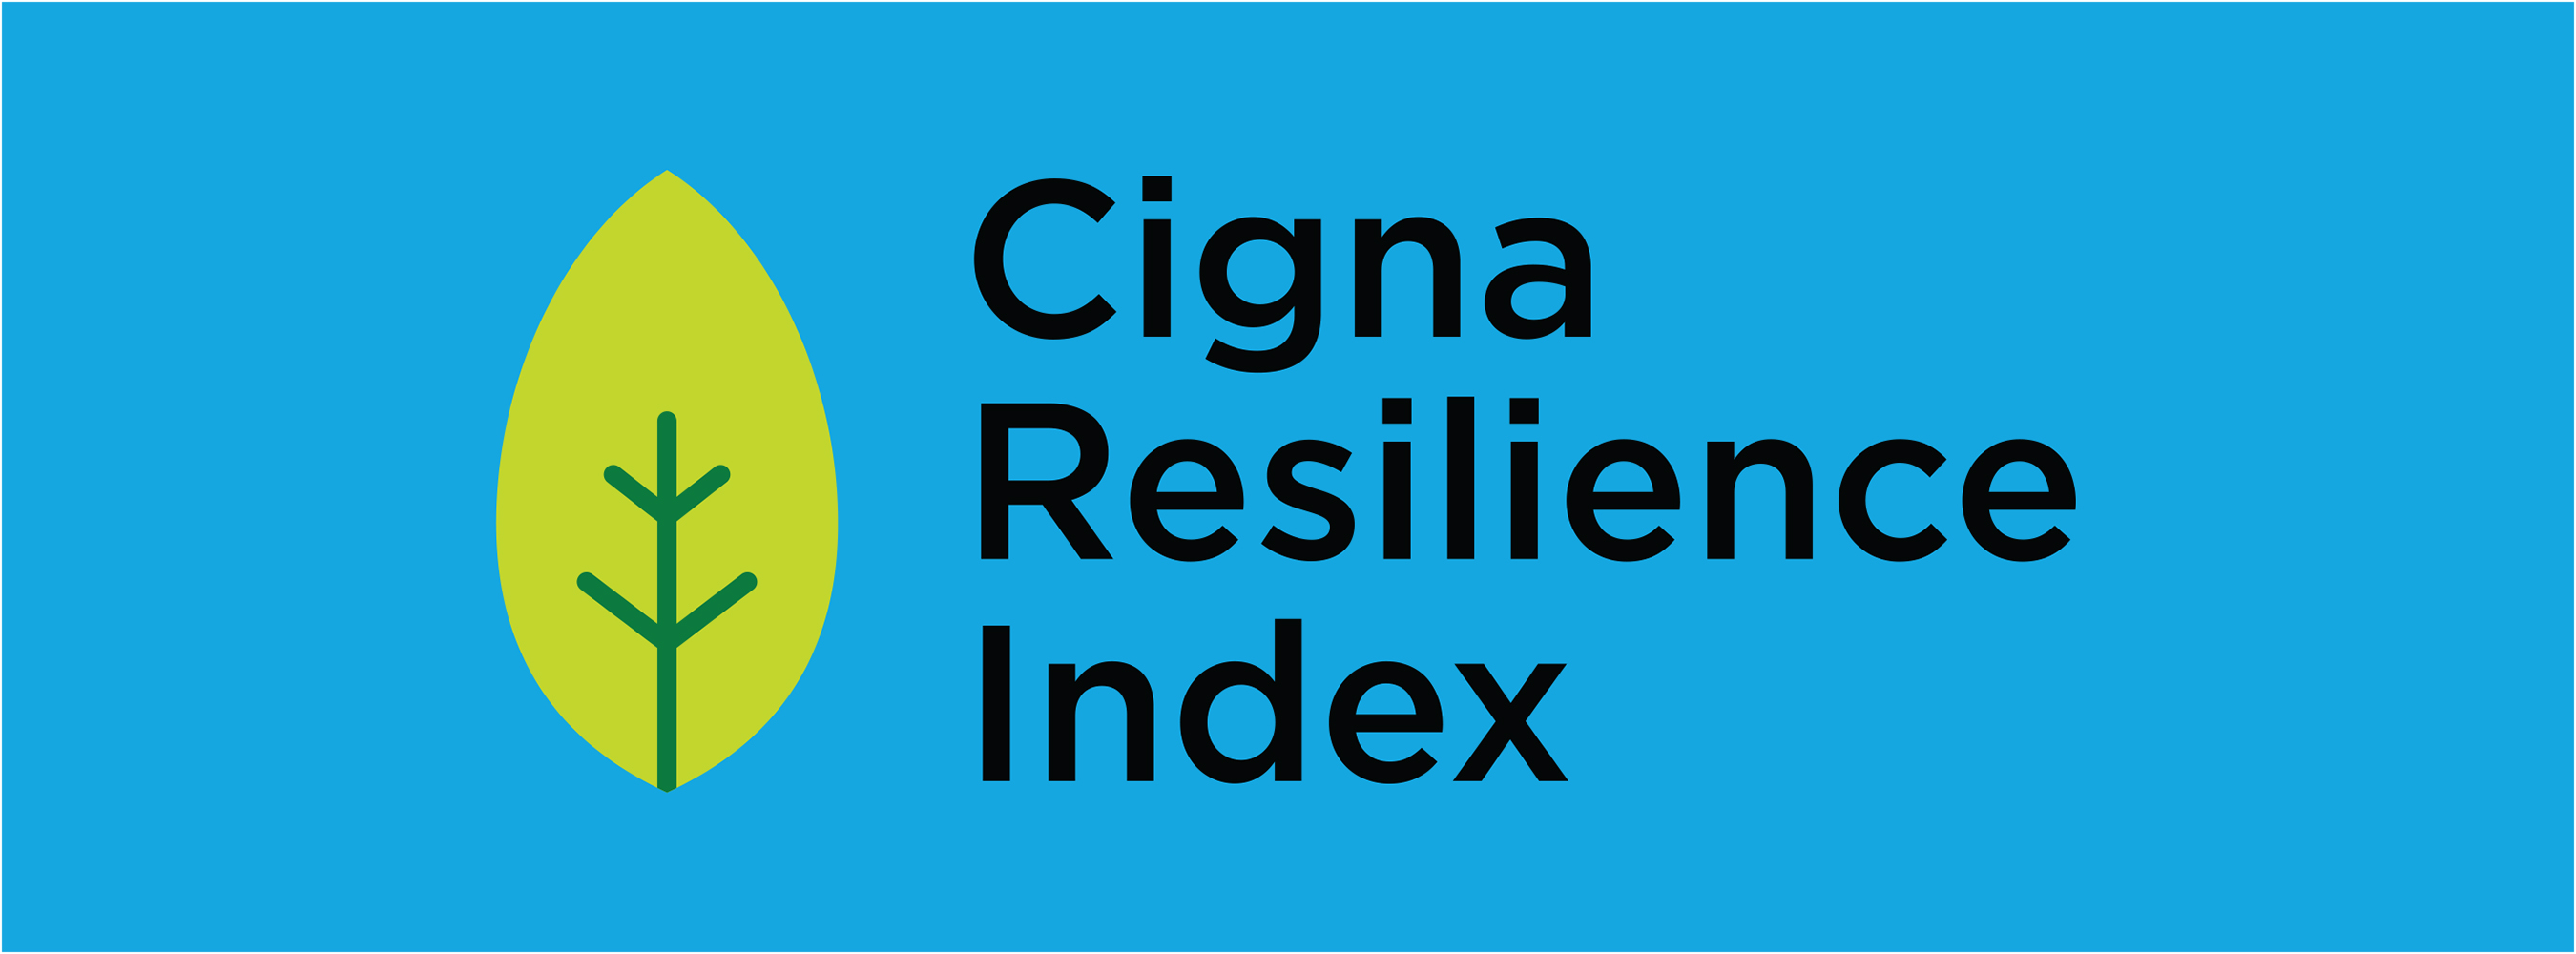 New Landmark Study From Cigna Shows American Resilience Is At Risk